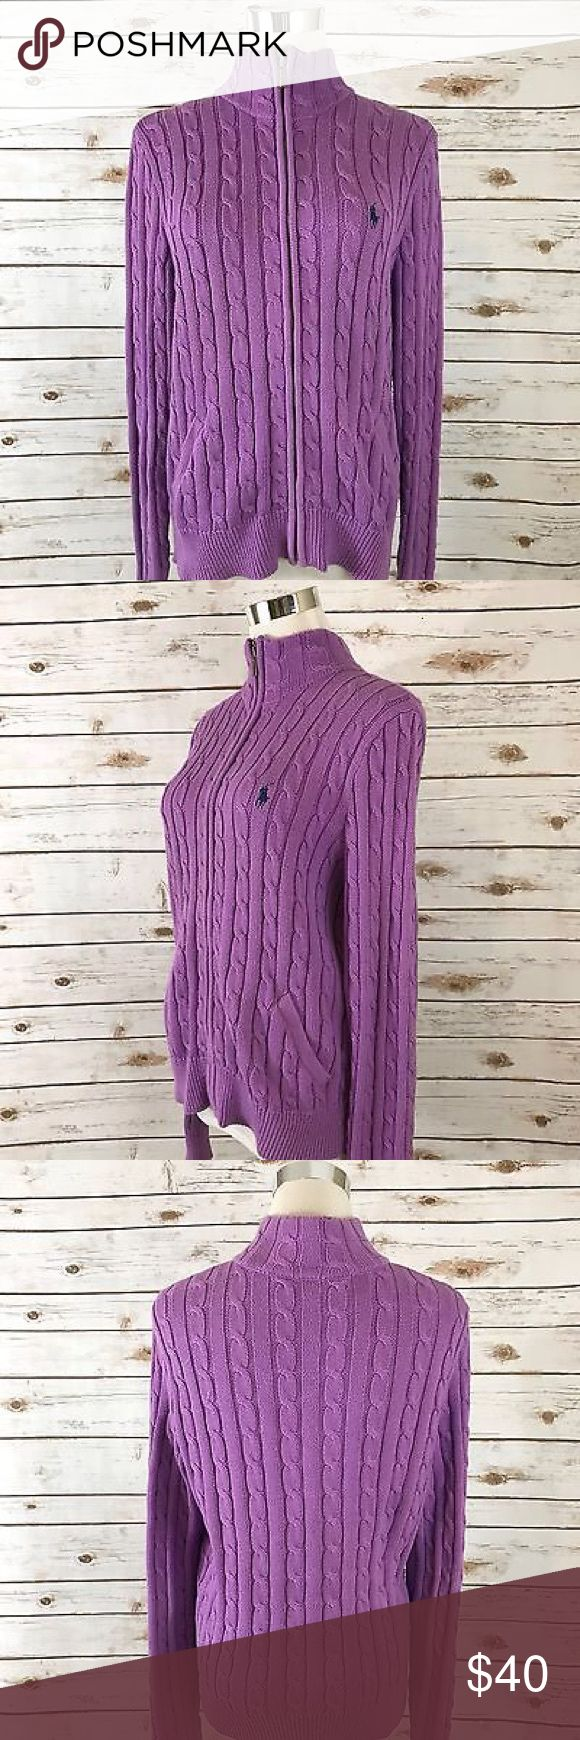 Ralph Lauren L Cardigan Sweater Full Zip Up  LARGE Women's Ralph Lauren L Cardigan Sweater Full Zip Up PURPLE Cable Knit LARGE.                Chest  38 length 23 Ralph Lauren Sweaters Cardigans